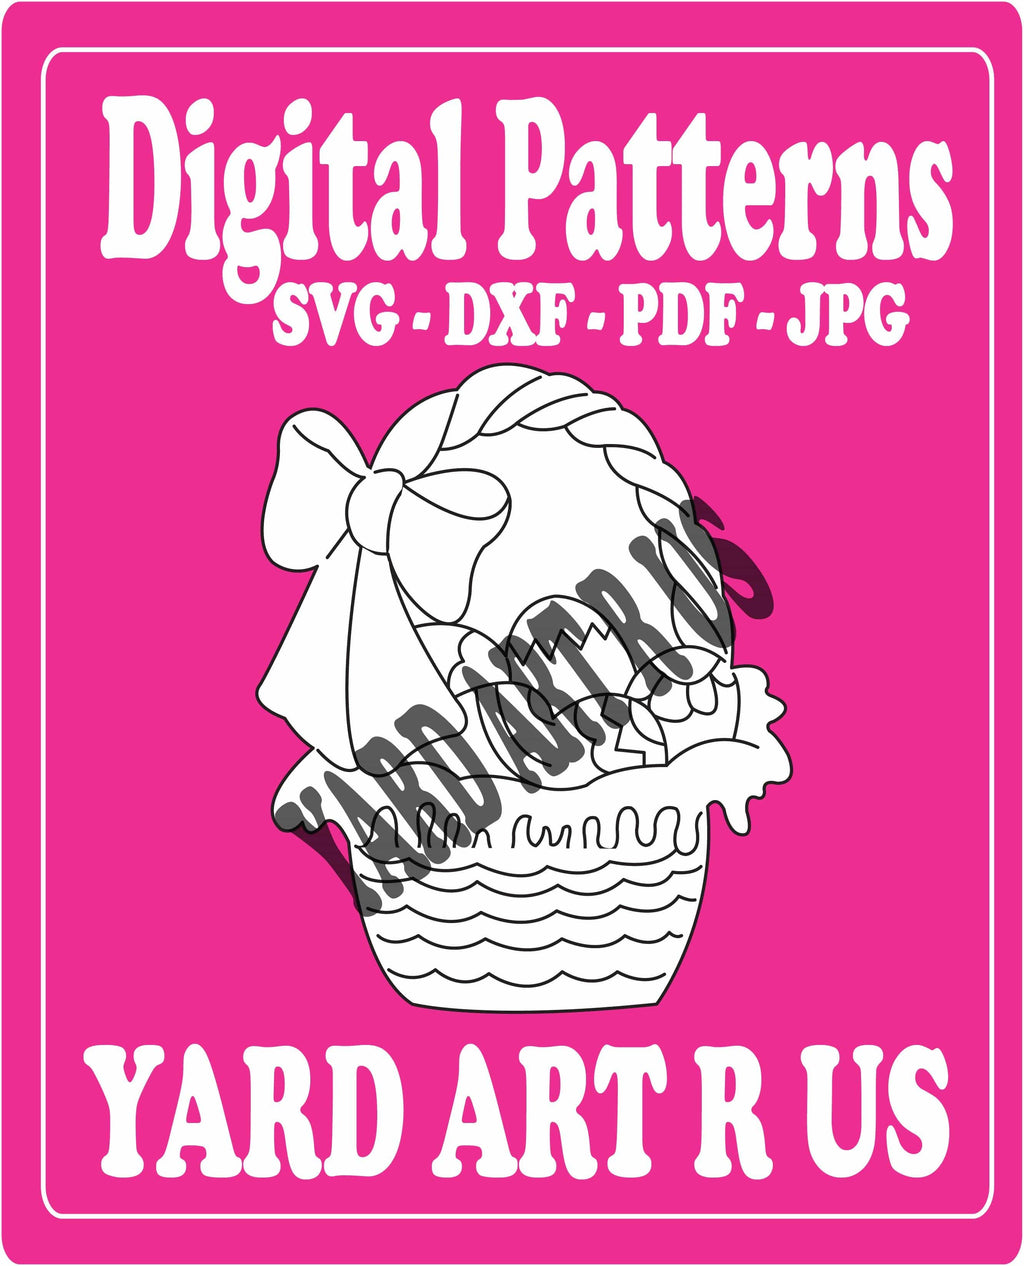 easter basket with decorated eggs in it and a bow digital pattern - SVG, DXF, PDF, and JPG file options